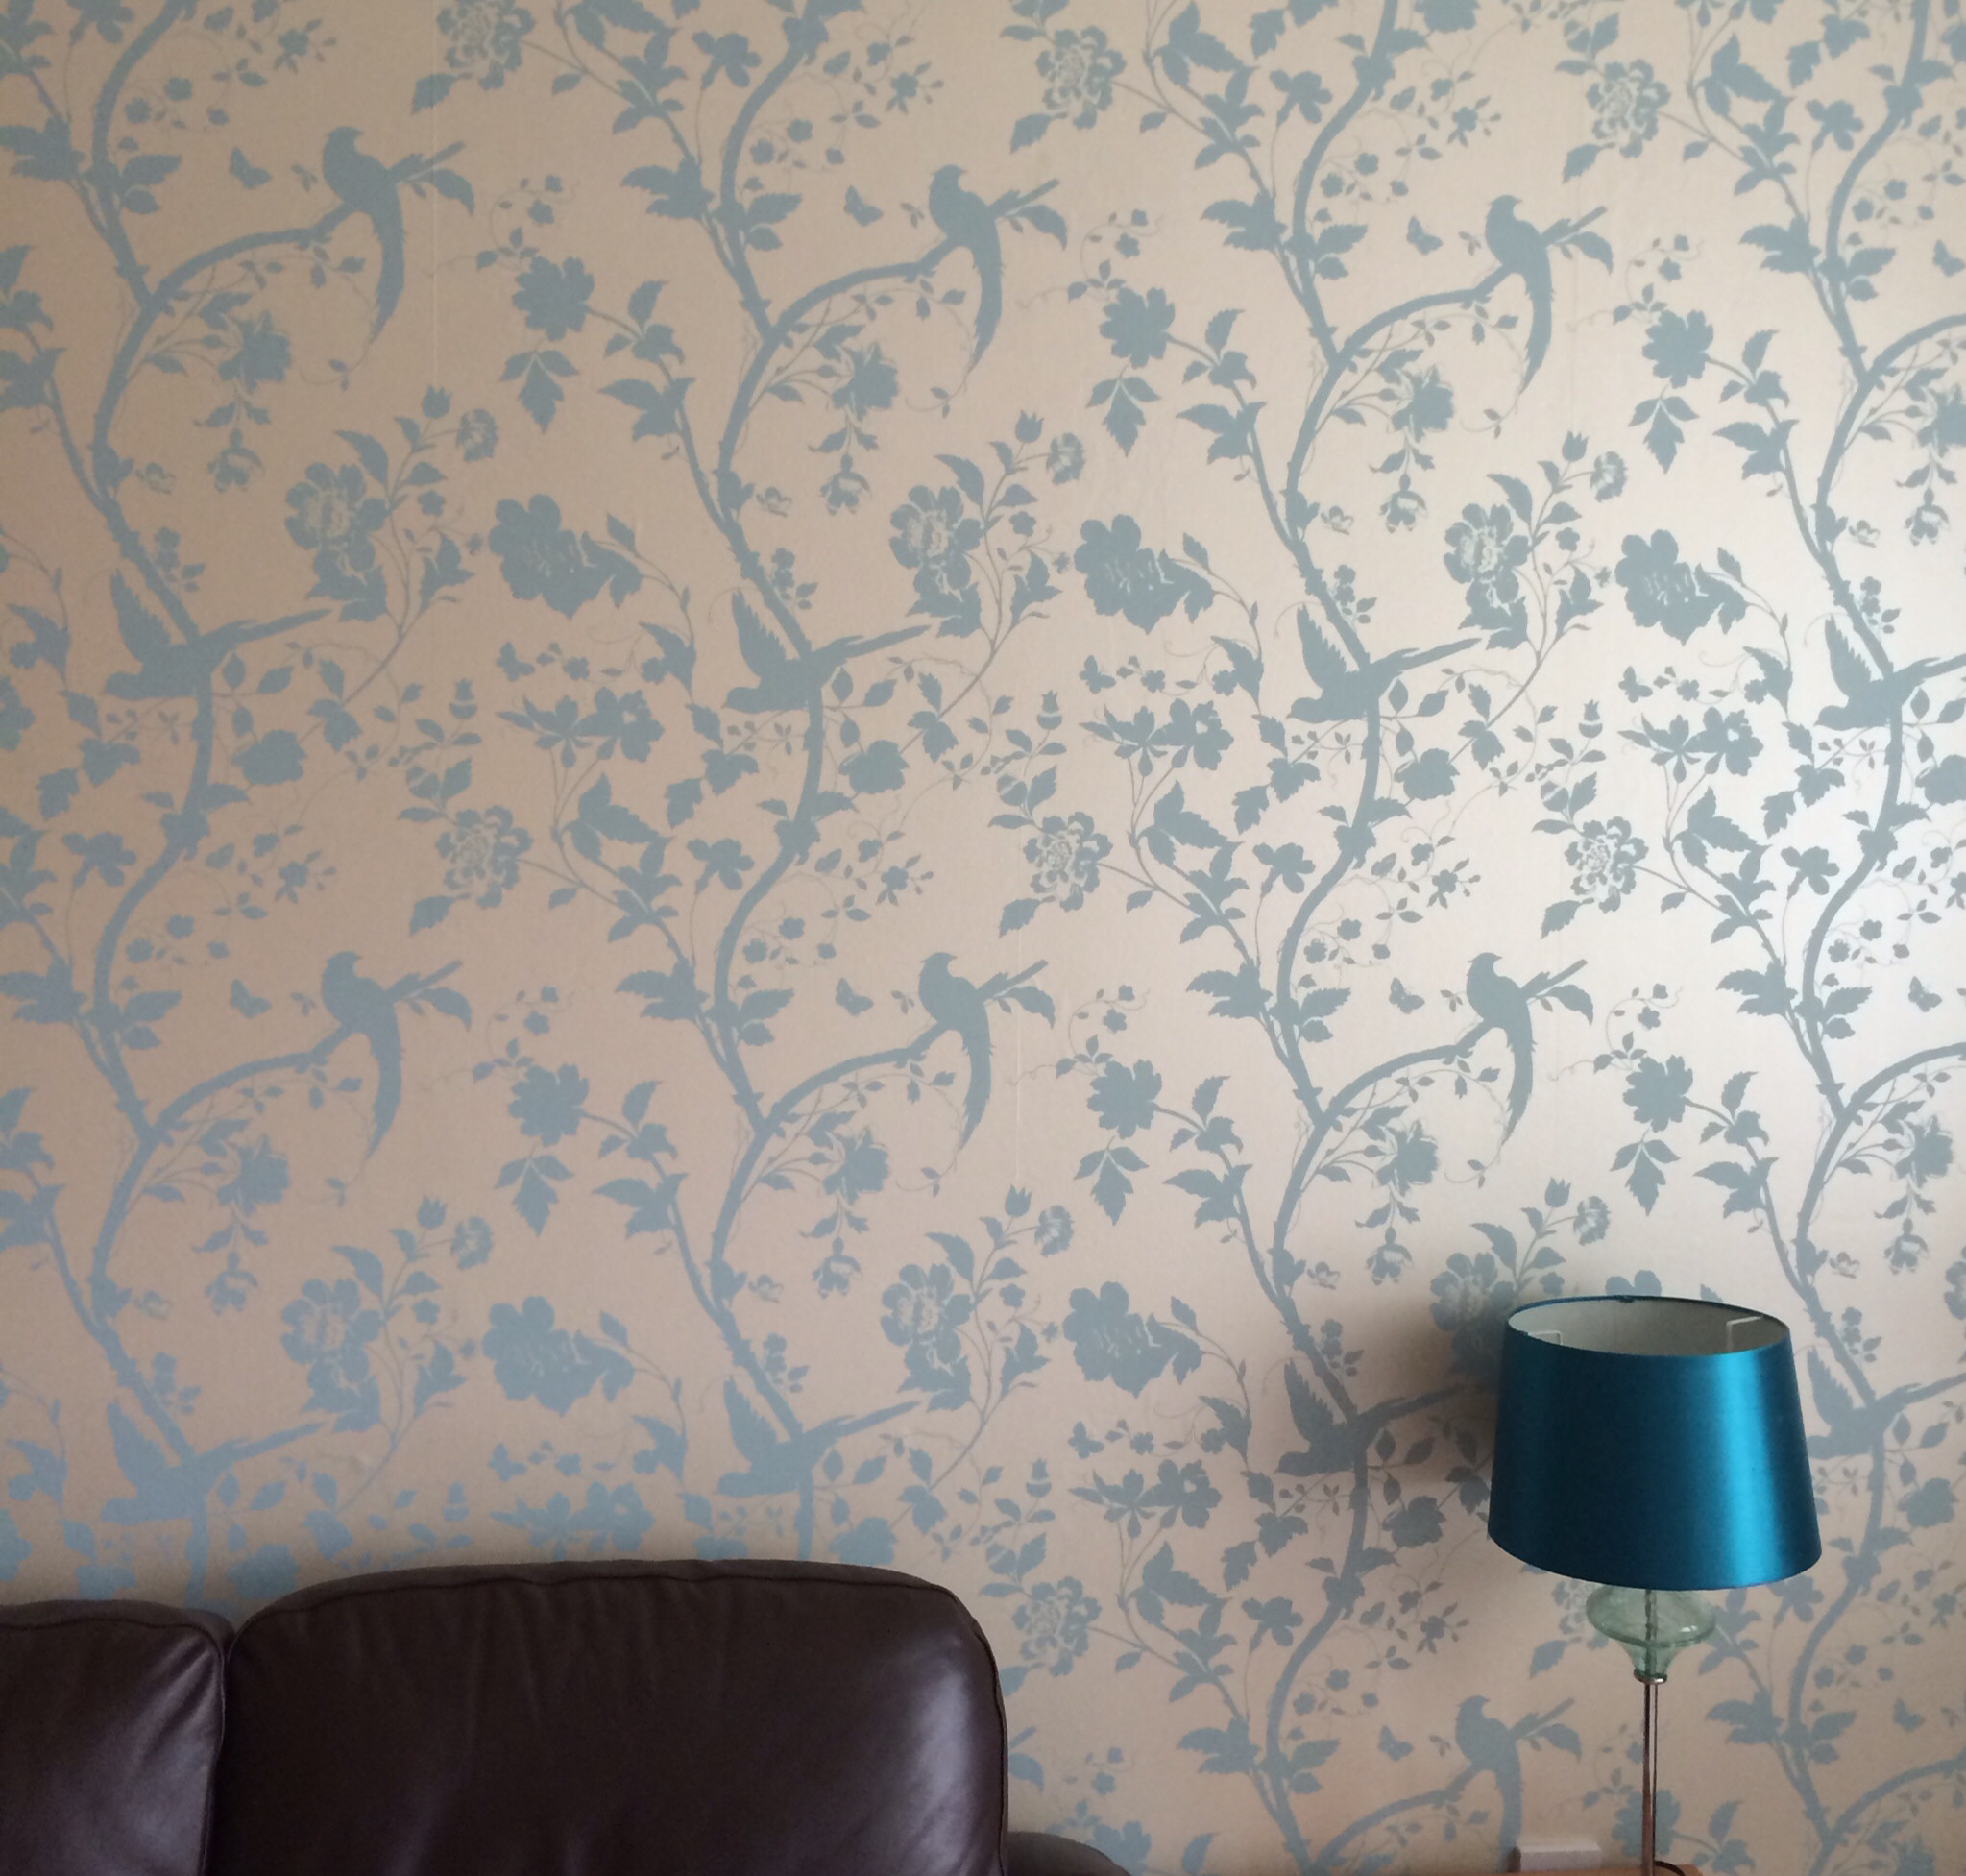 2047x1953 Laura Ashley Oriental Garden wallpaper in duck egg